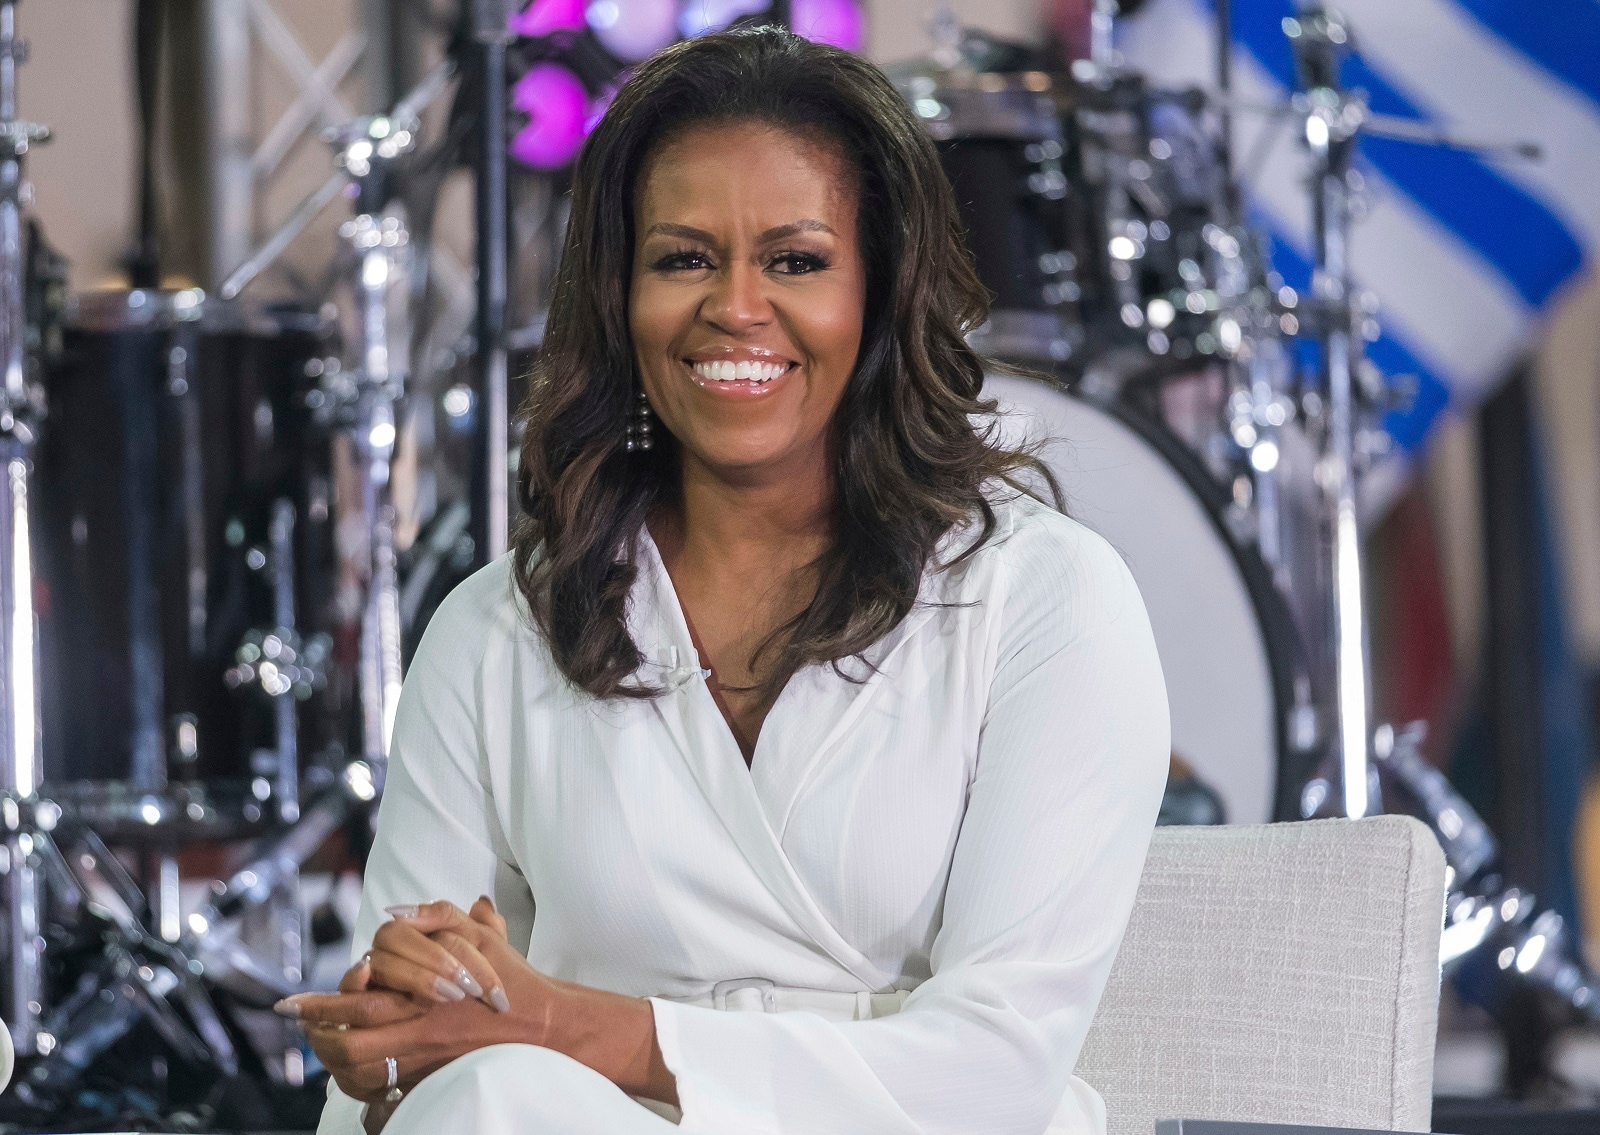 #7. Michelle Obama, former First Lady of the United States. Admiration Score: 5.53 percent. (Image: Reuters)